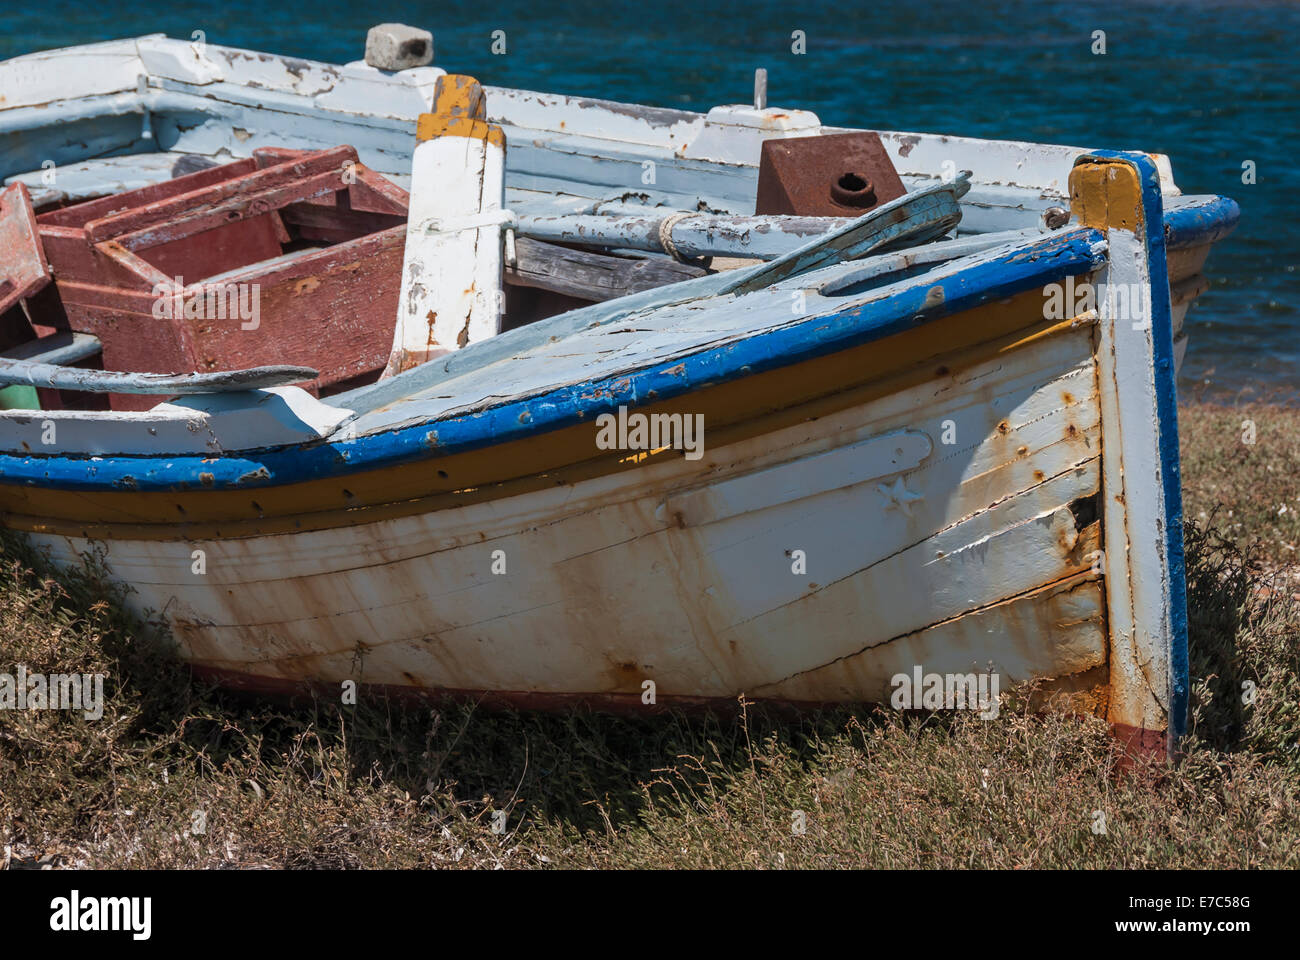 An abandoned and dilapidated old wooden boat